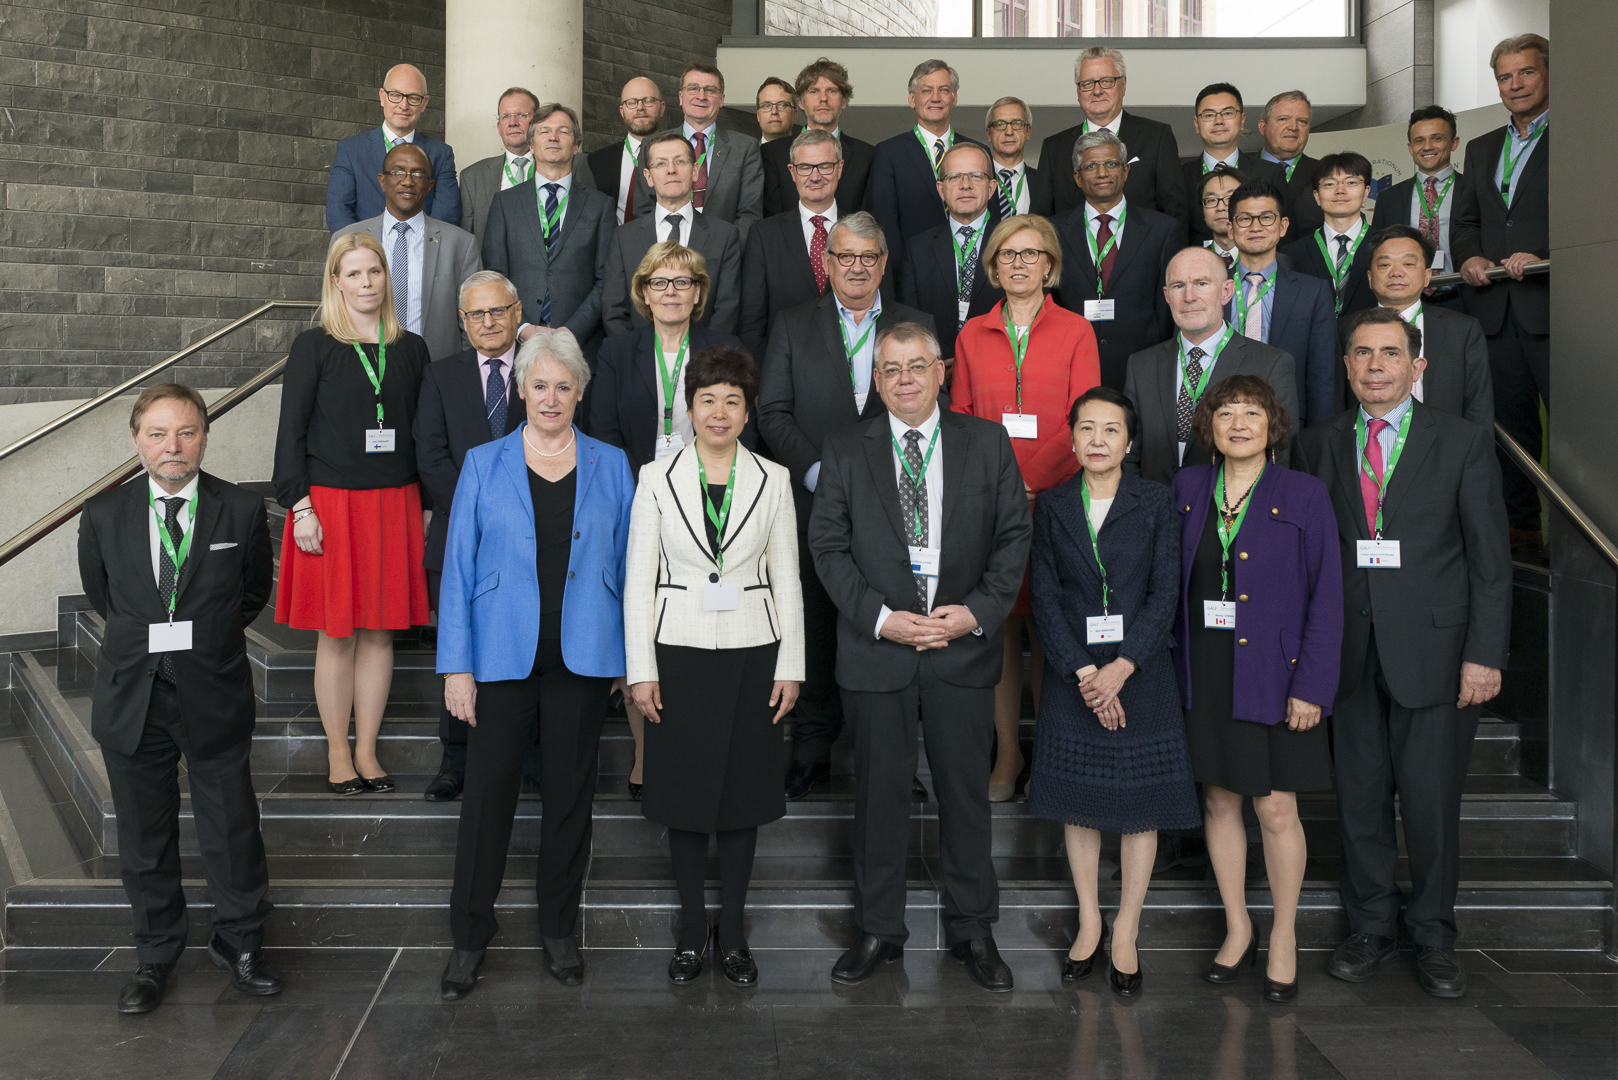 World public audit leaders gather at ECA for Global Audit Leadership Forum on 26-27 April 2018